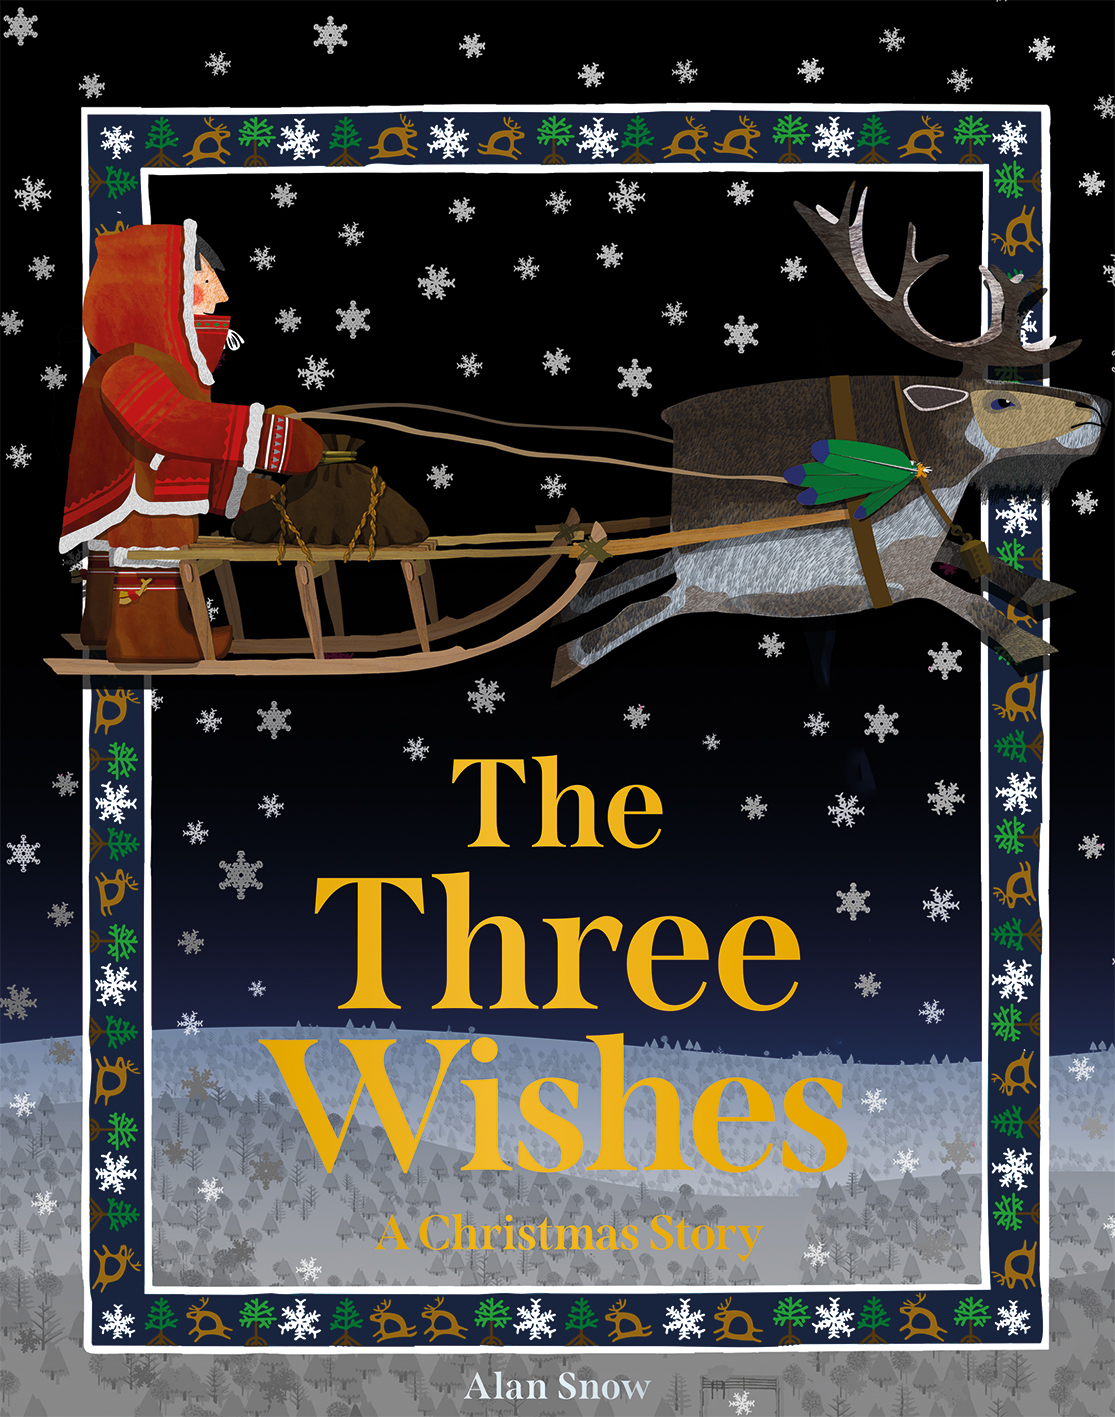 The Three Wishes by Alan Snow